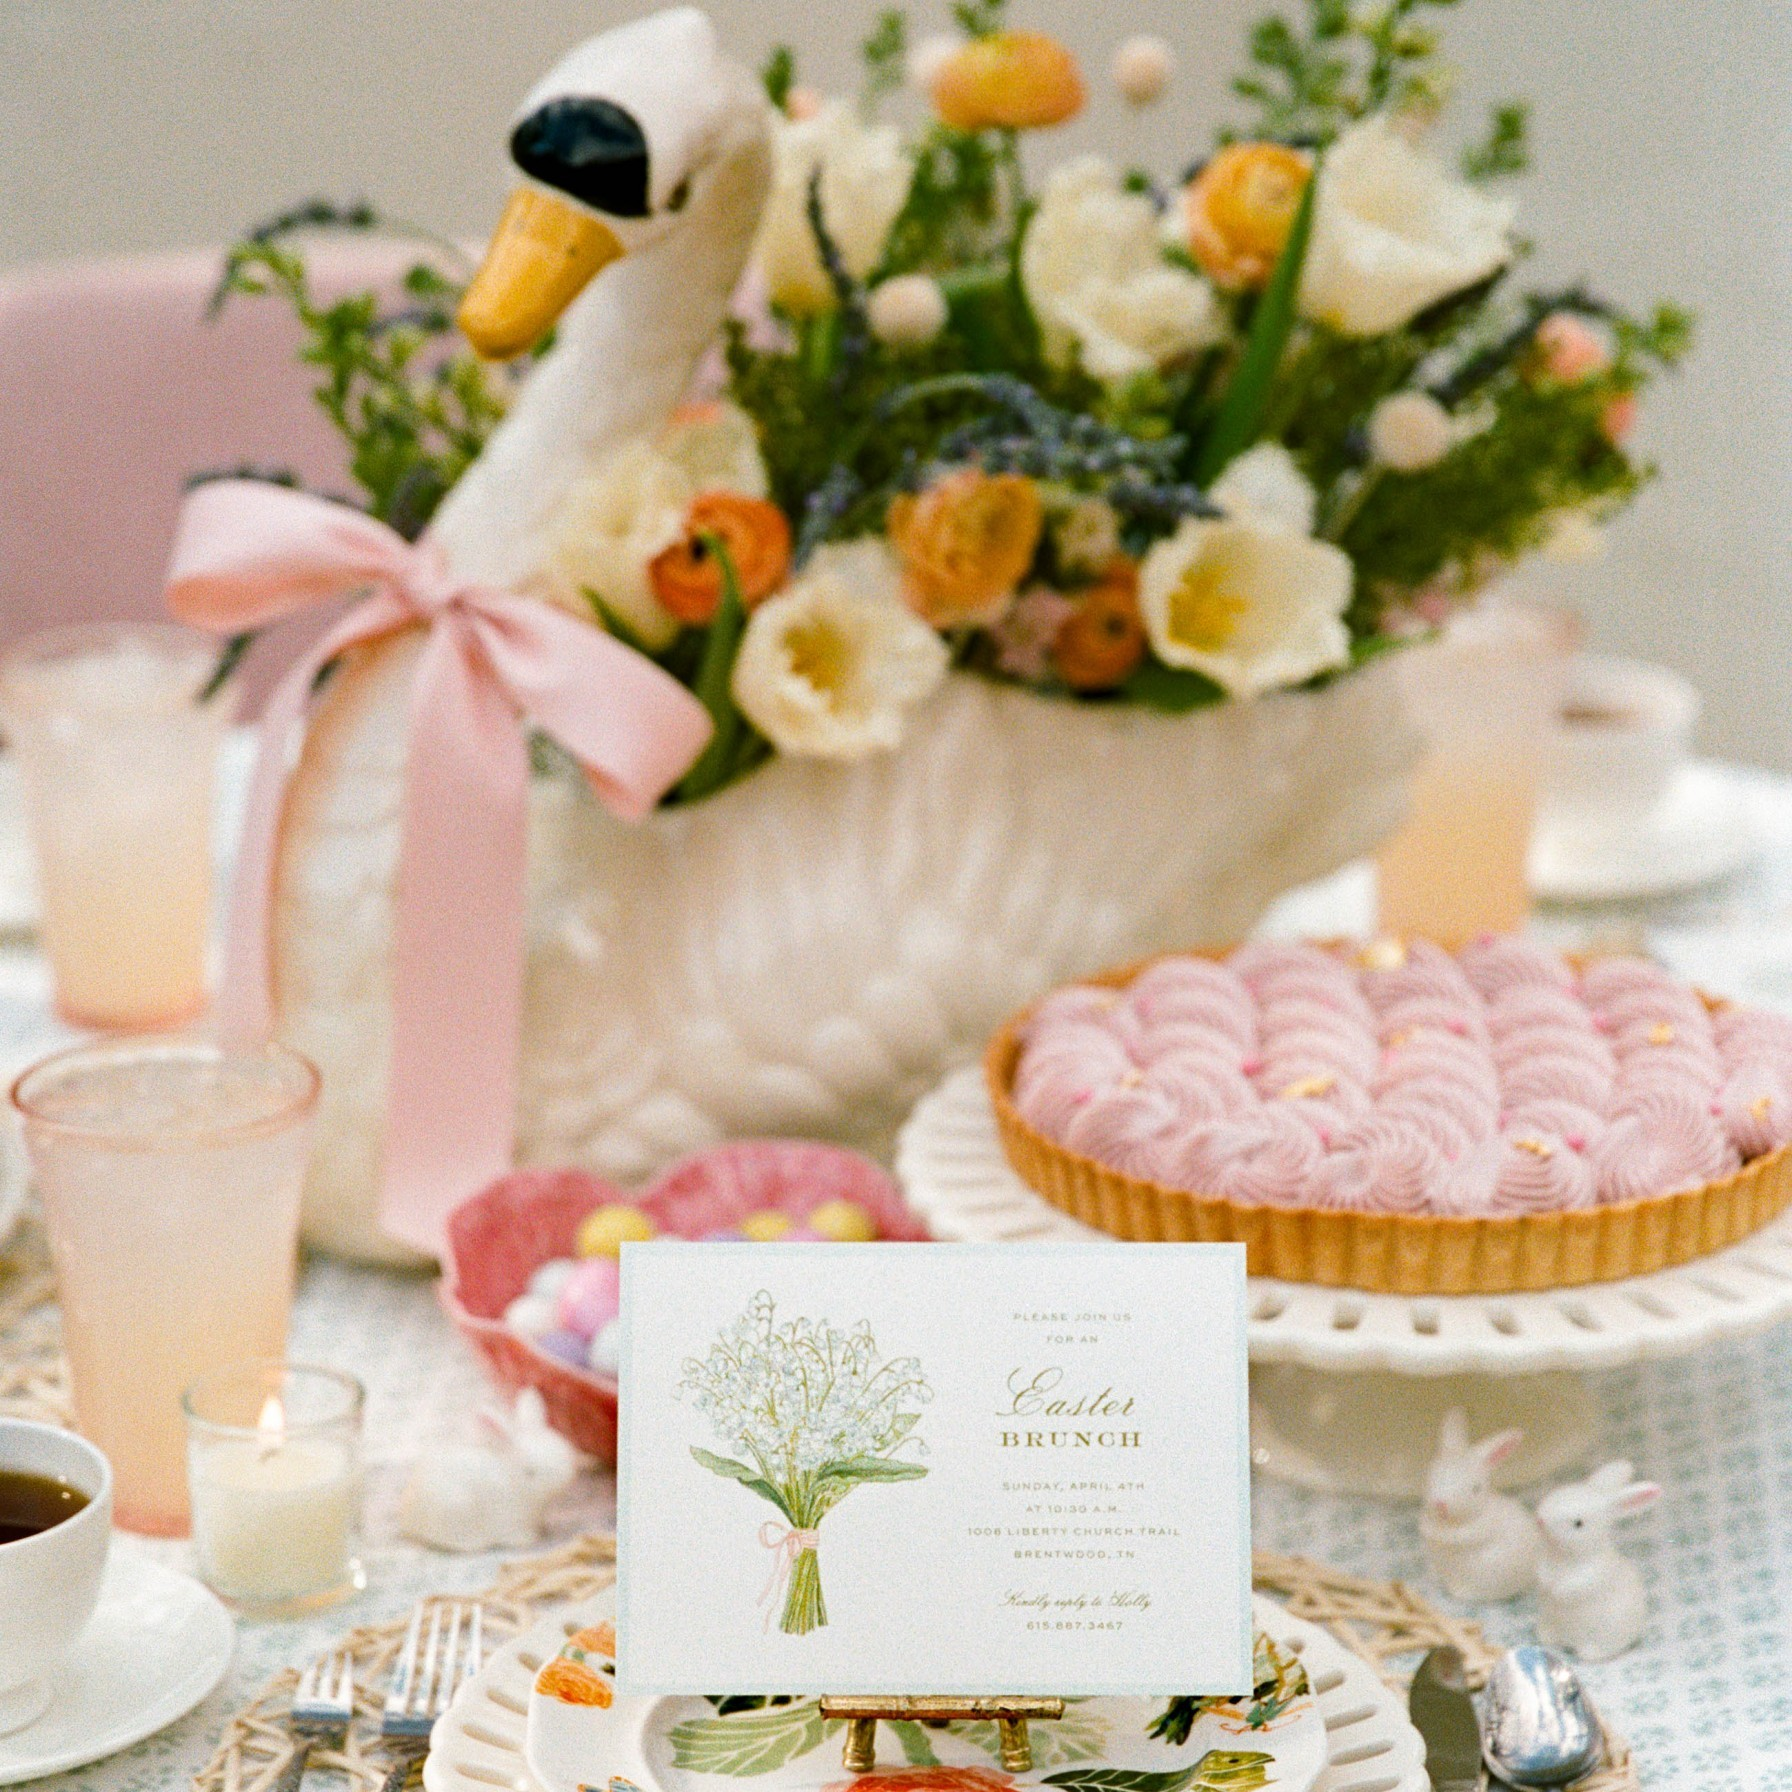 An Easter Table for Small Gatherings